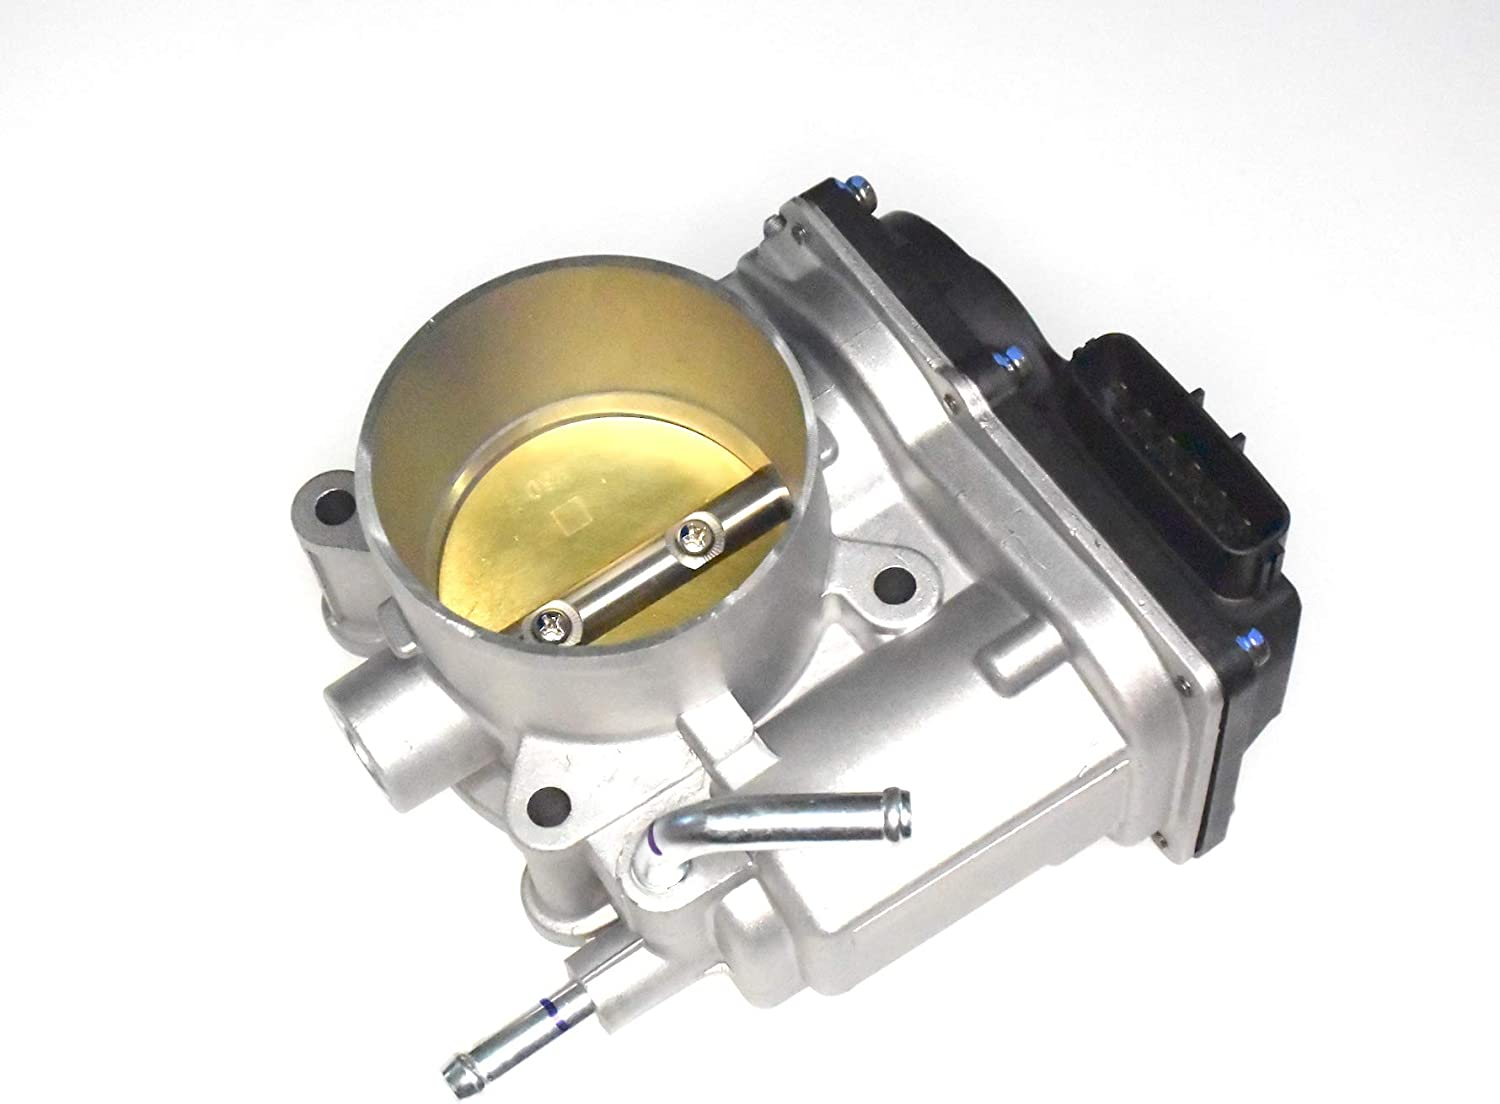 New ELECTRIC Throttle Body for 2011 2012 2013 2014 2015 2016 2017 2018 Subaru Forester 2.5L H4 Non-turbo Engine